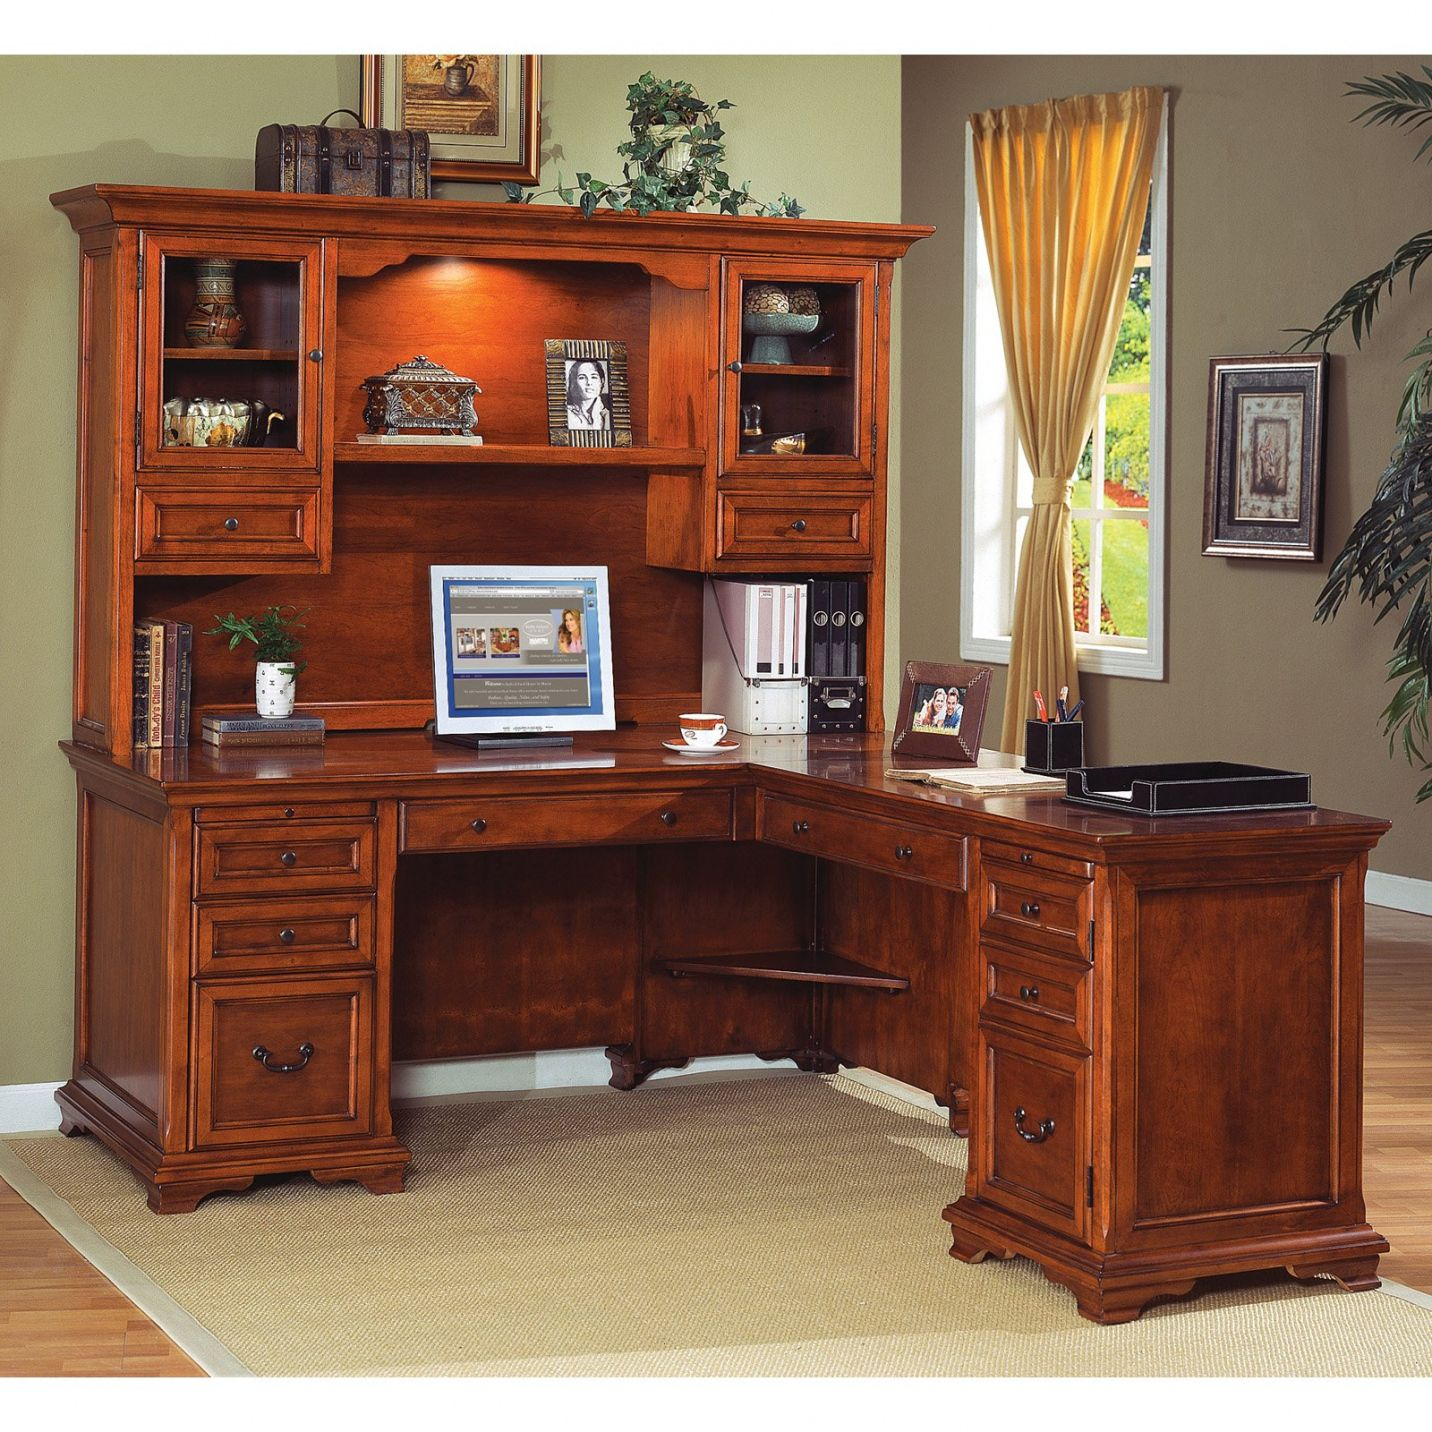 wood home office desks. L Shaped Desk With Hutch Home Office - Real Wood Furniture Check More At Http://michael-malarkey.com/l-shaped-desk-with-hutch-home- Office/ Desks S